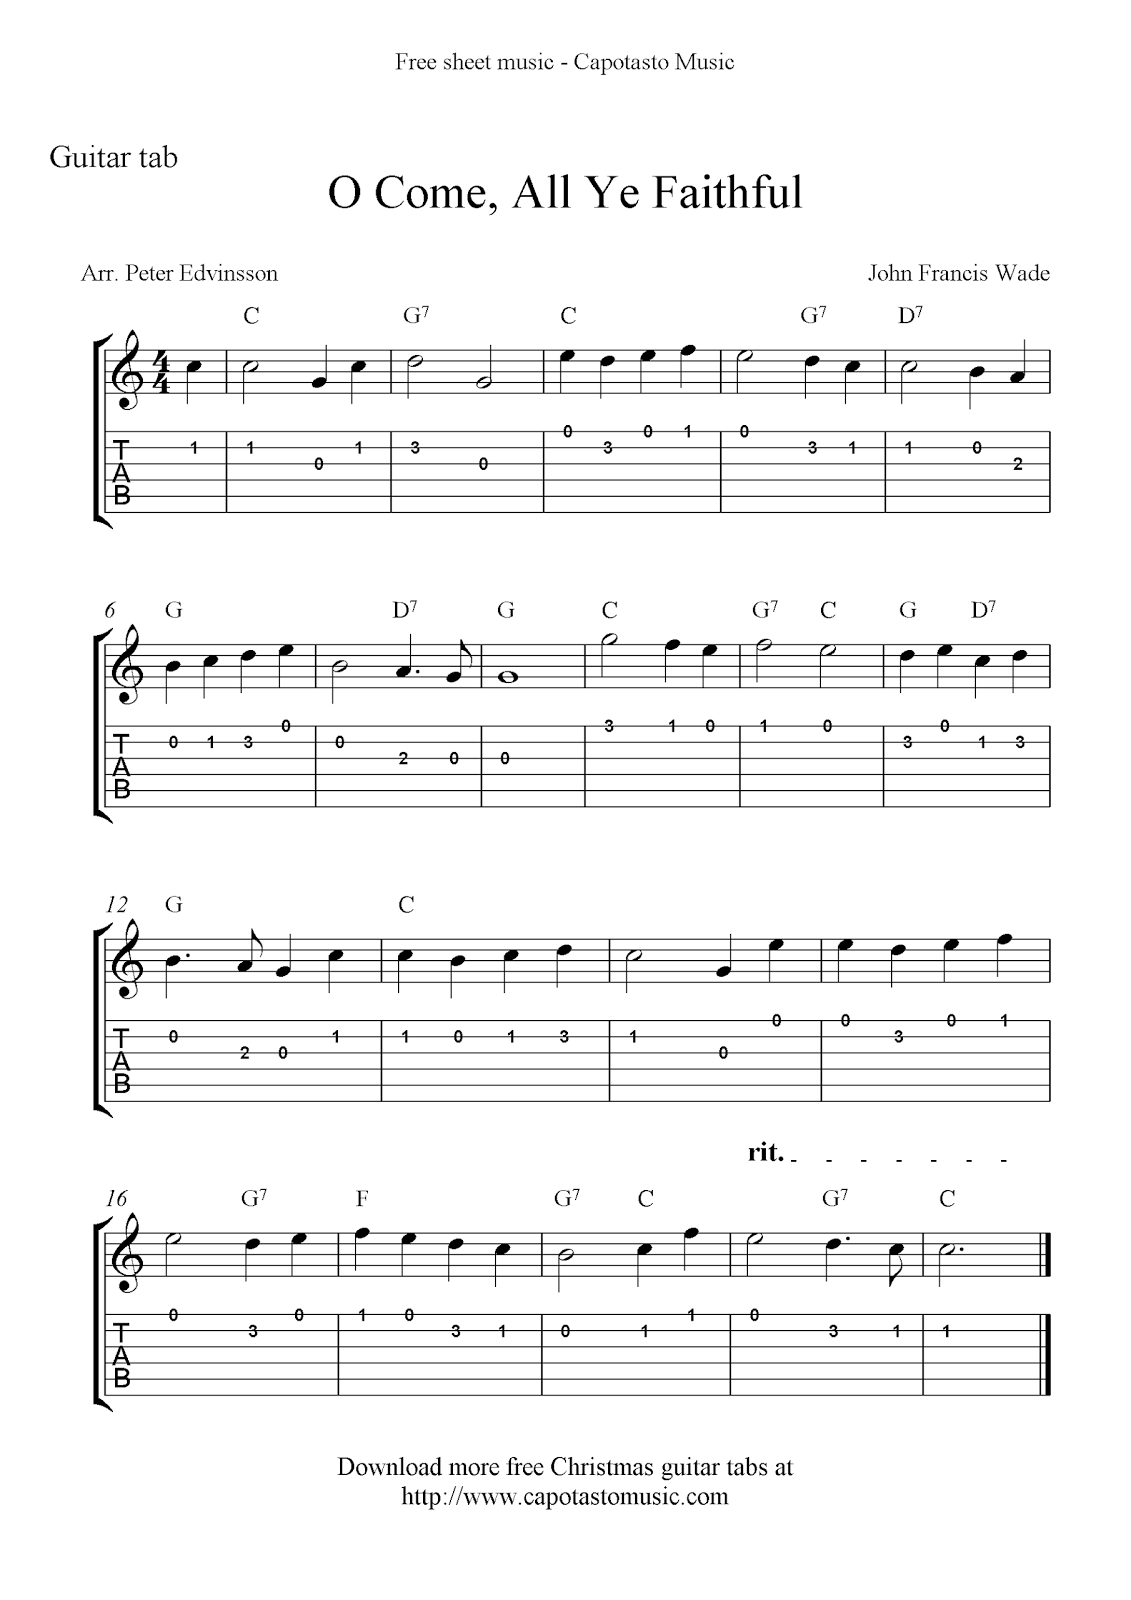 Free Printable Sheet Music: O Come, All Ye Faithful, Easy Free - Free Printable Guitar Tabs For Beginners